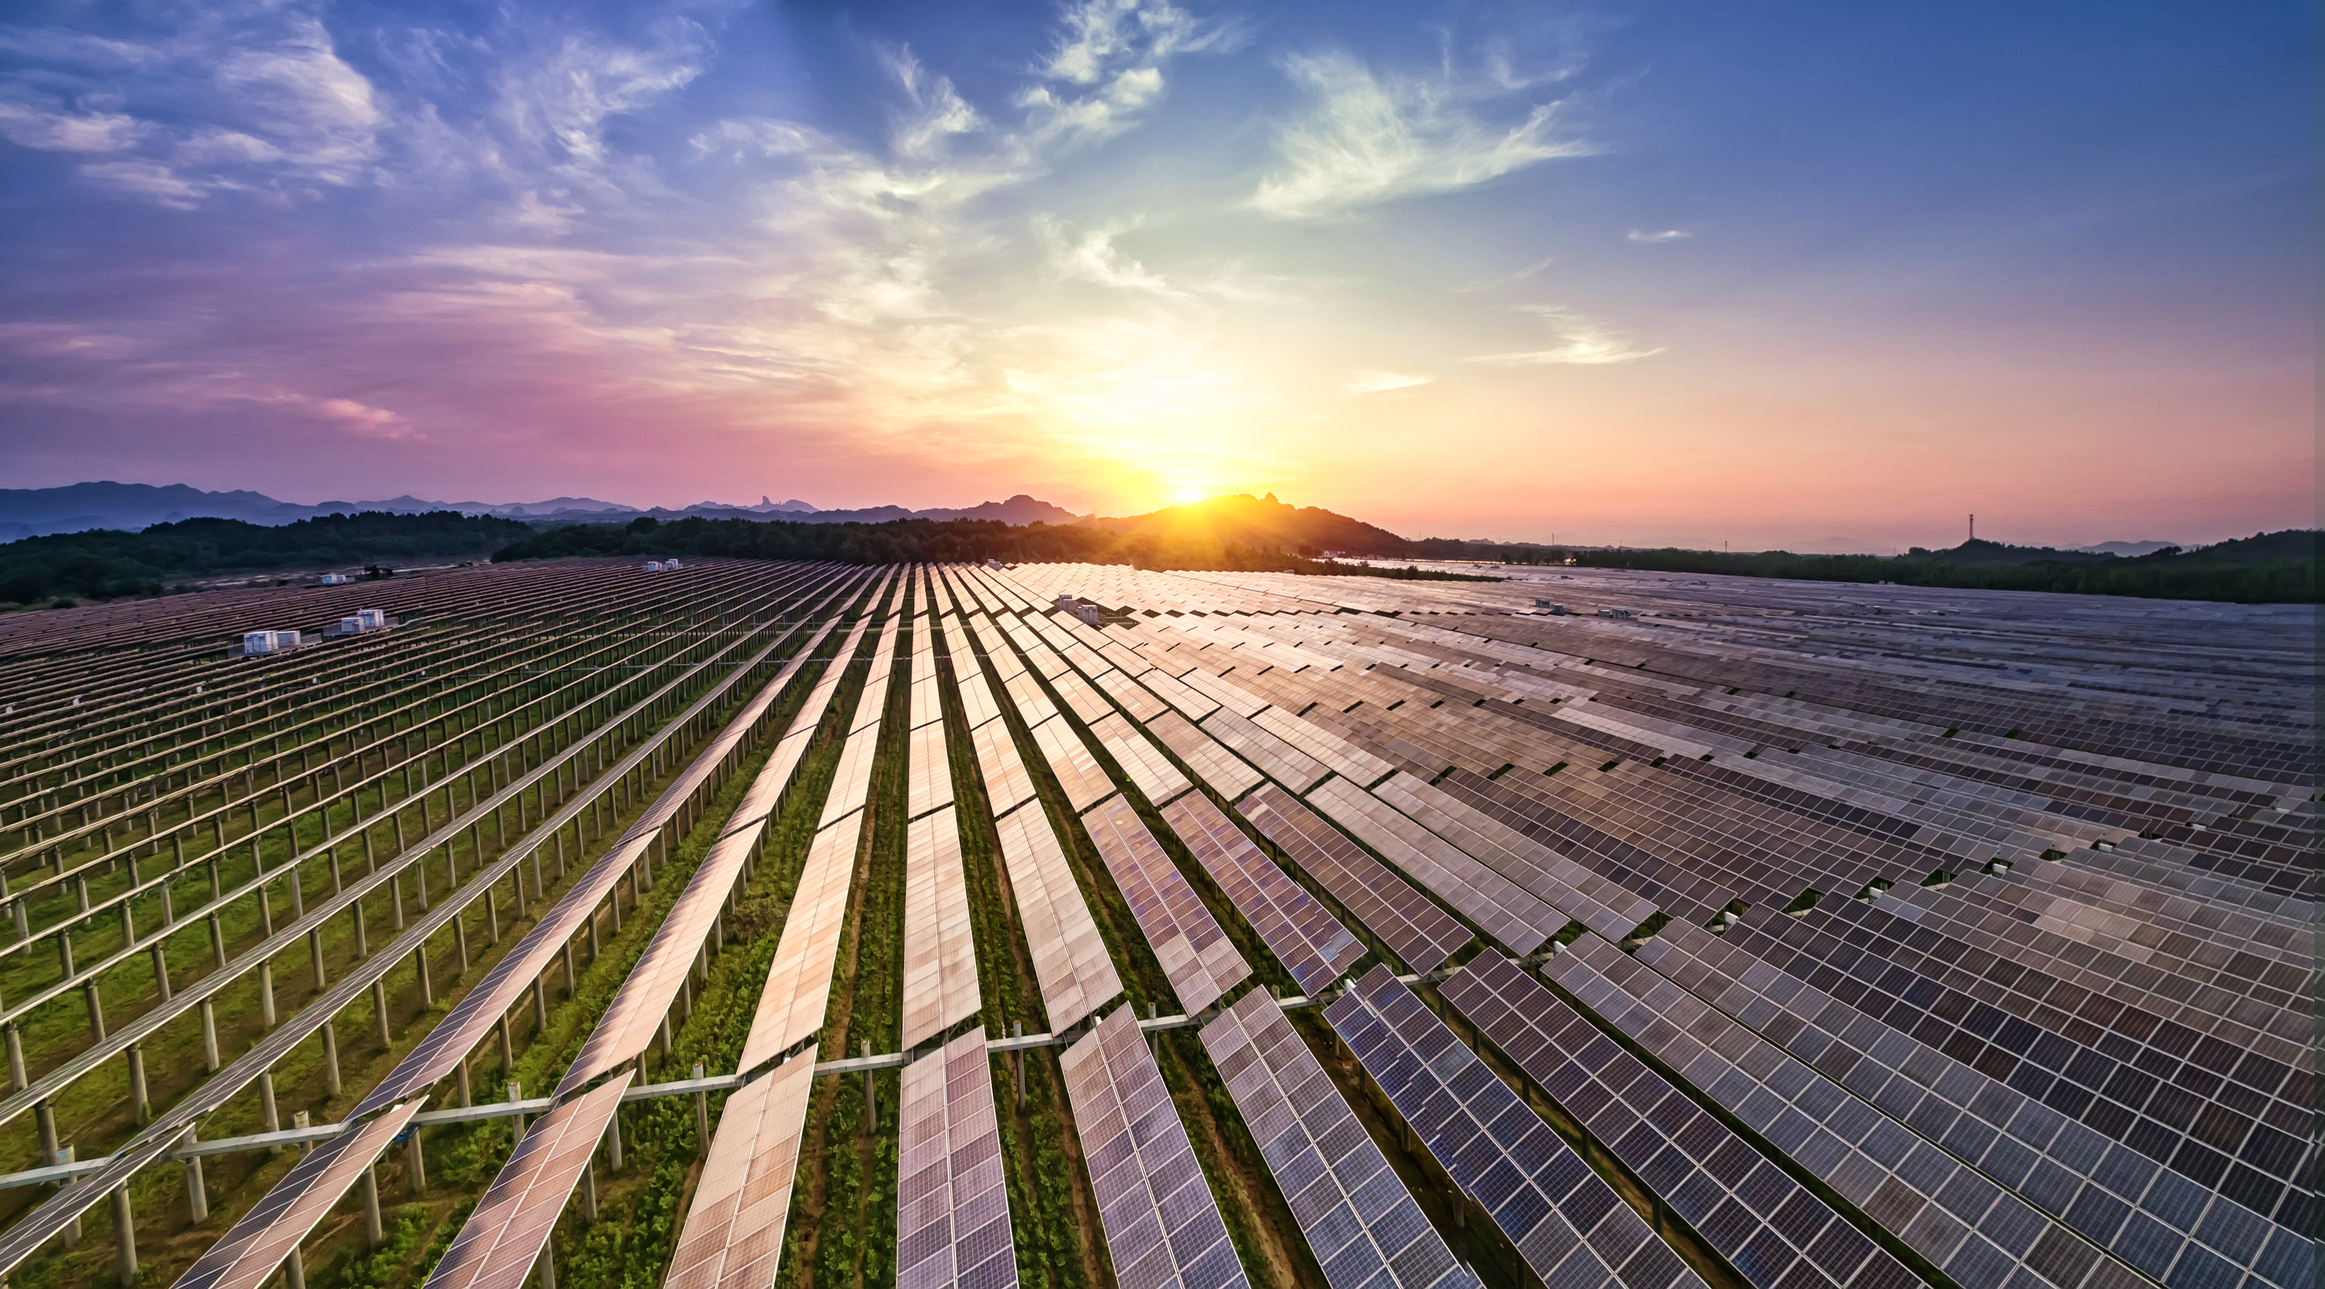 Arbitrators deny Italy security for costs in insolvent solar company claim